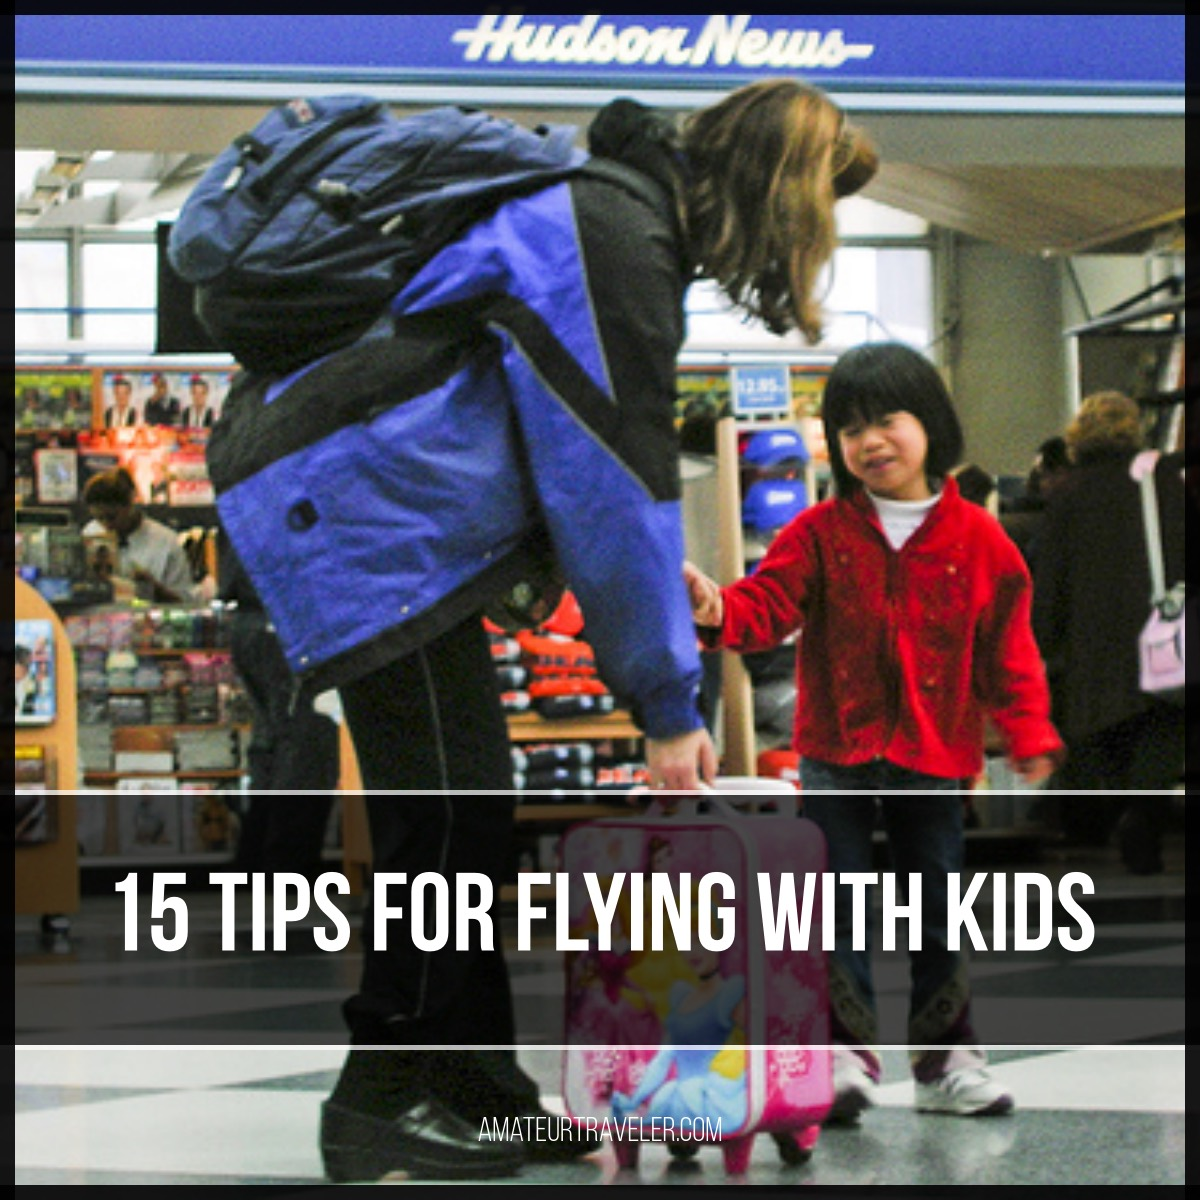 15 Tips for Flying With Kids